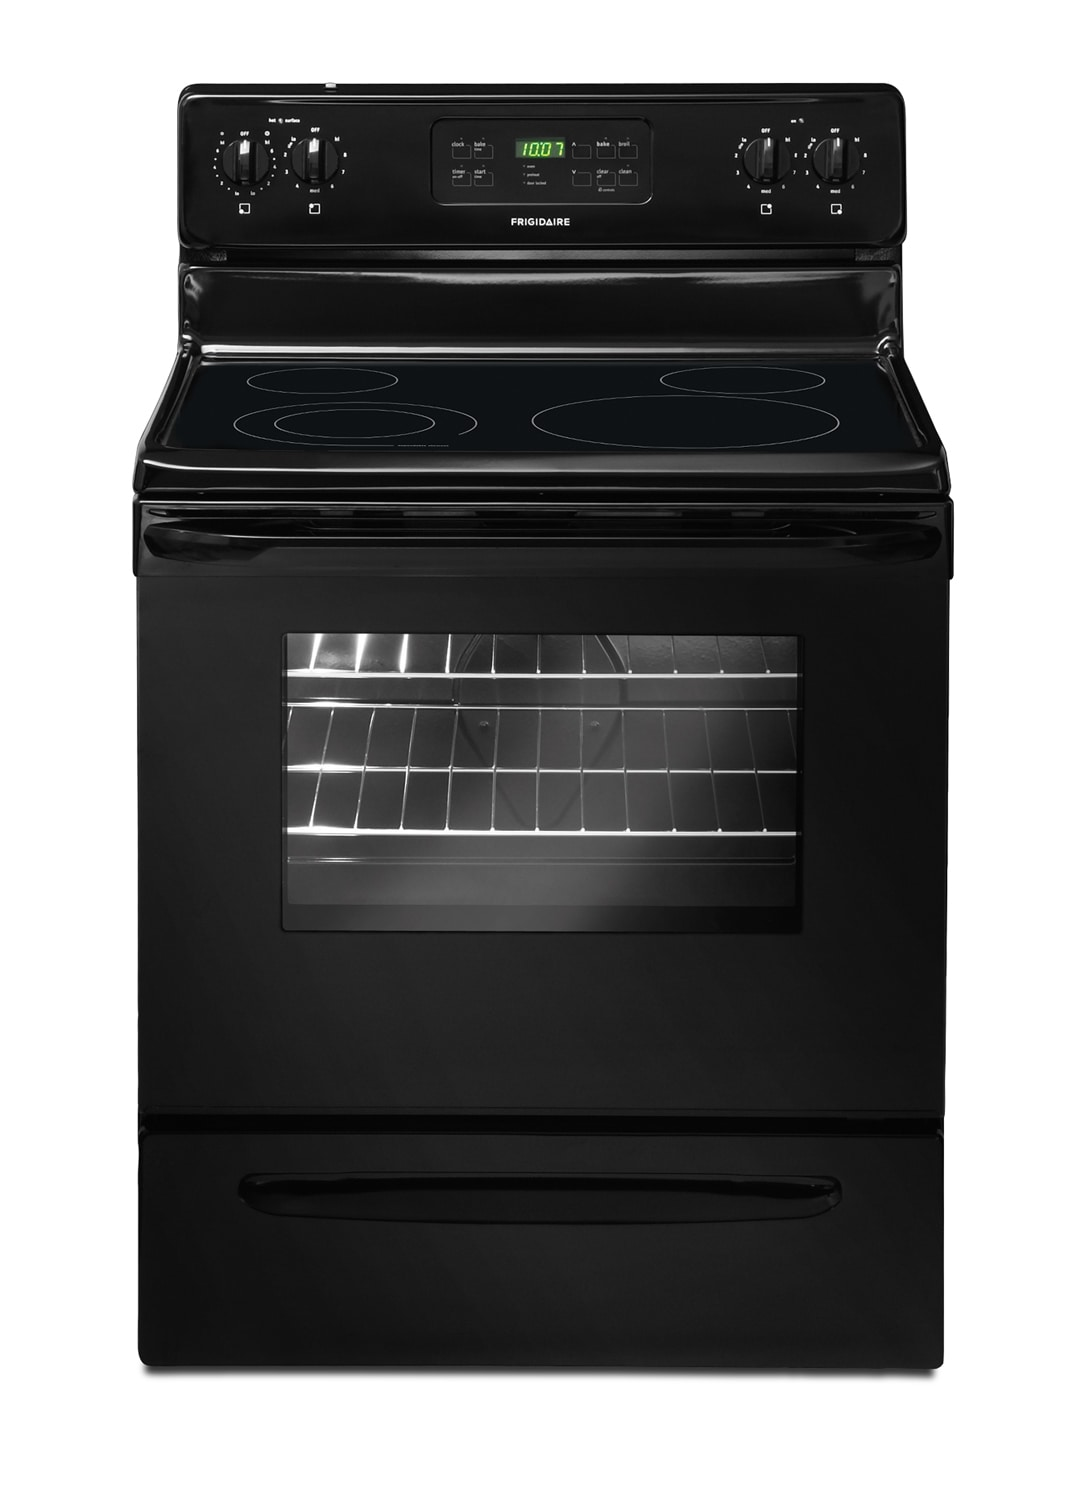 Cooking Products - Frigidaire Black Freestanding Electric Range (5.3 Cu. Ft.) - CFEF3018LB